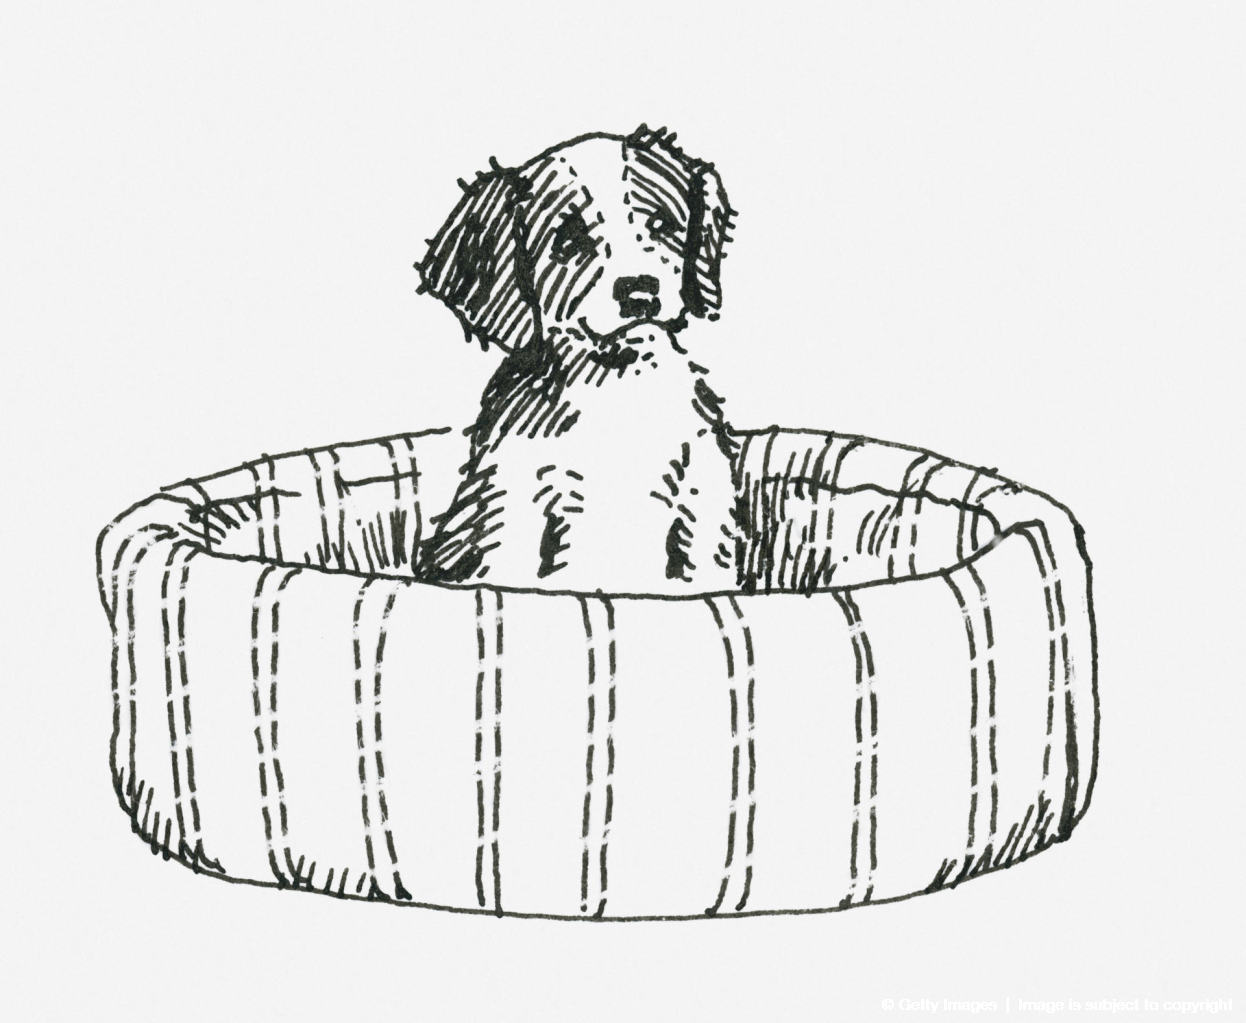 Black and white illustration of a puppy sitting up in a dog bed